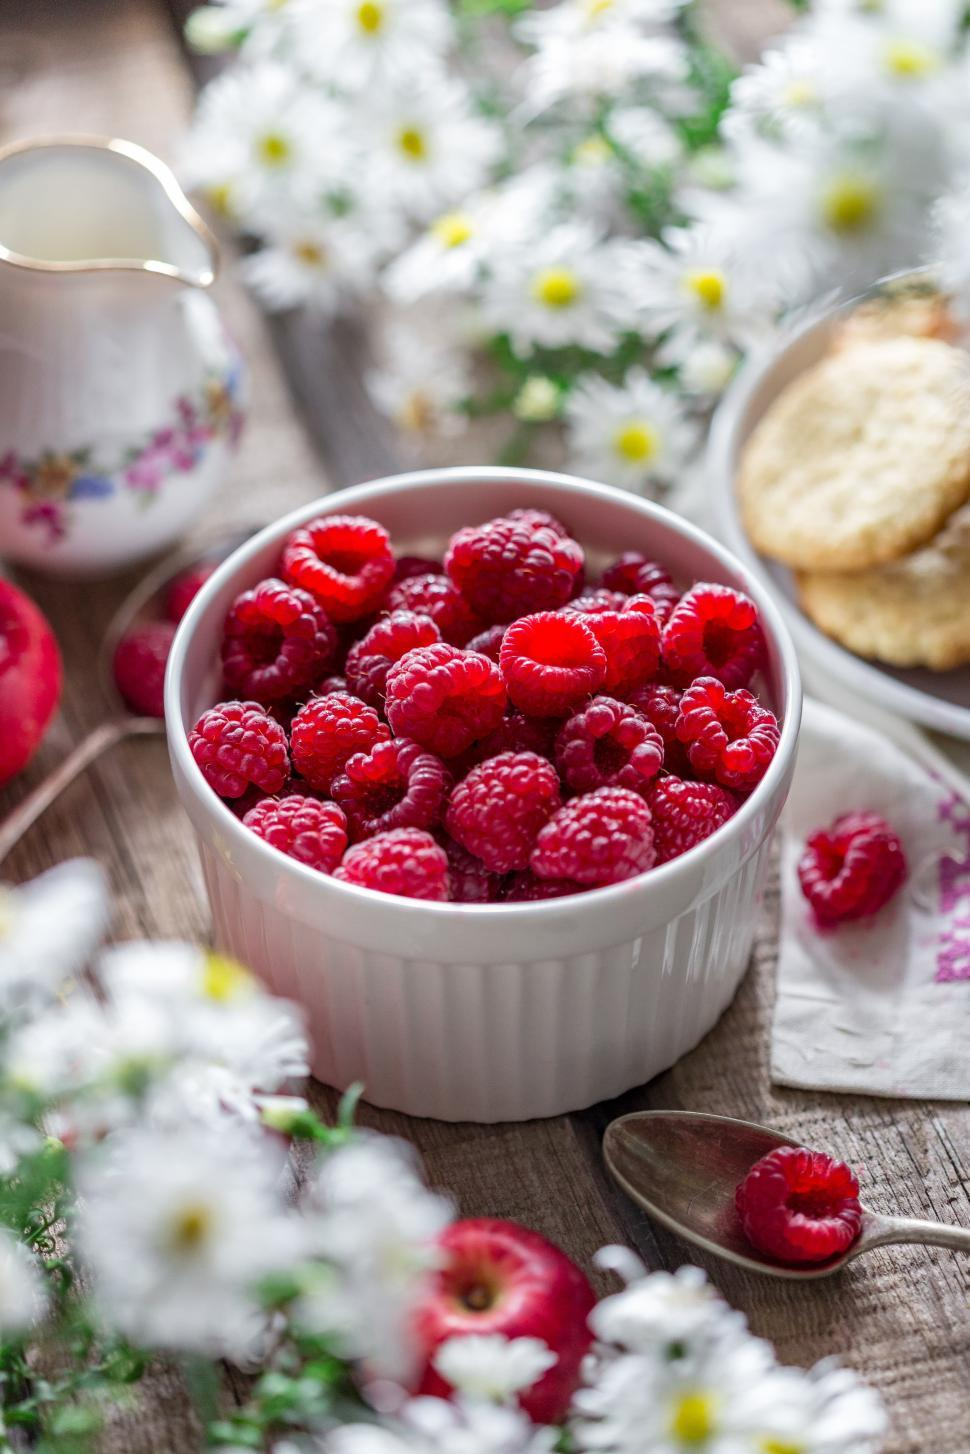 Download Free Stock HD Photo of Close up of a bowl of raspberries on a spring themed table Online